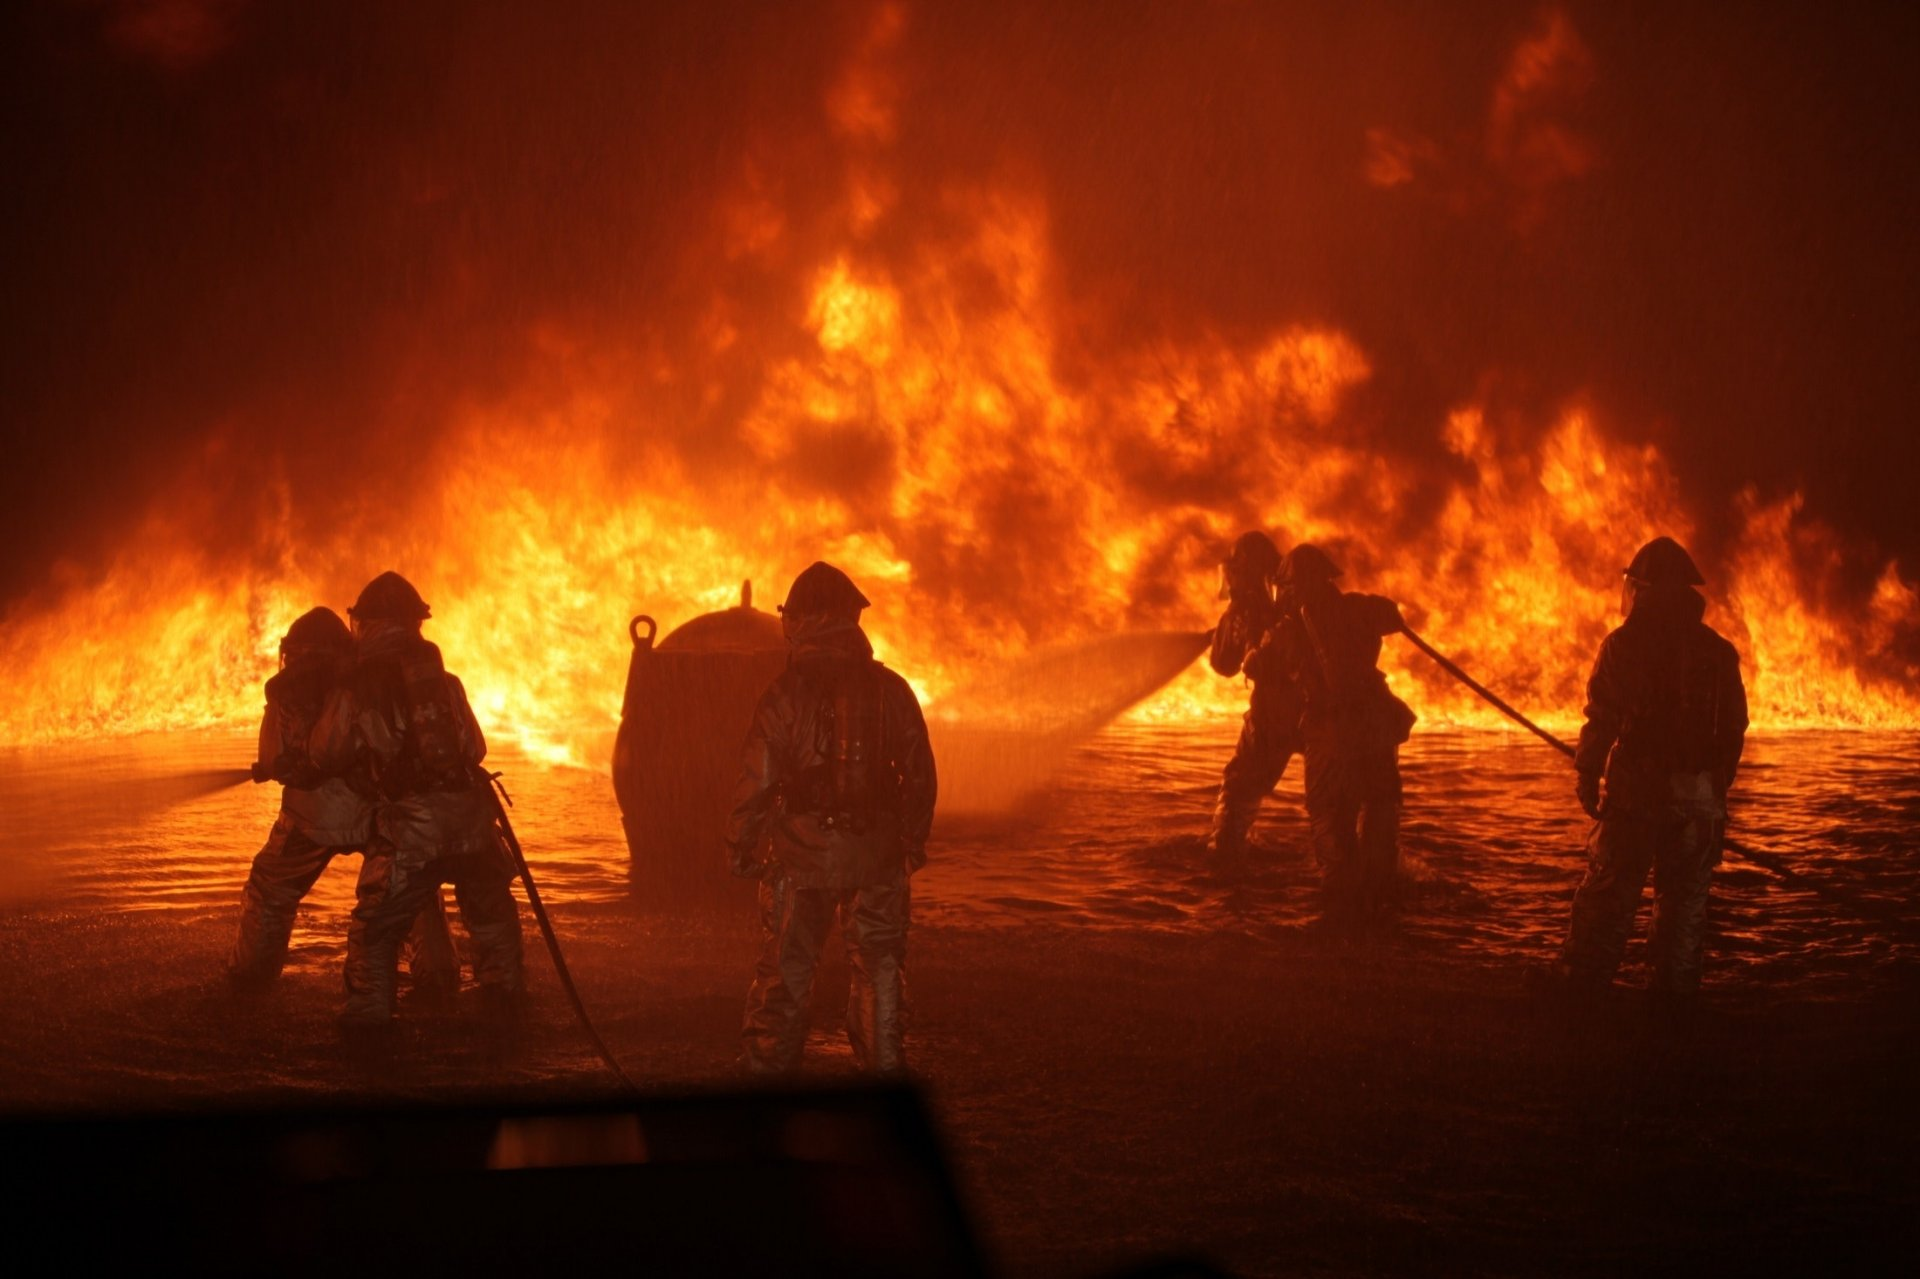 Predicting and Fighting Wildfires: Meet the AI Robots Saving Lives